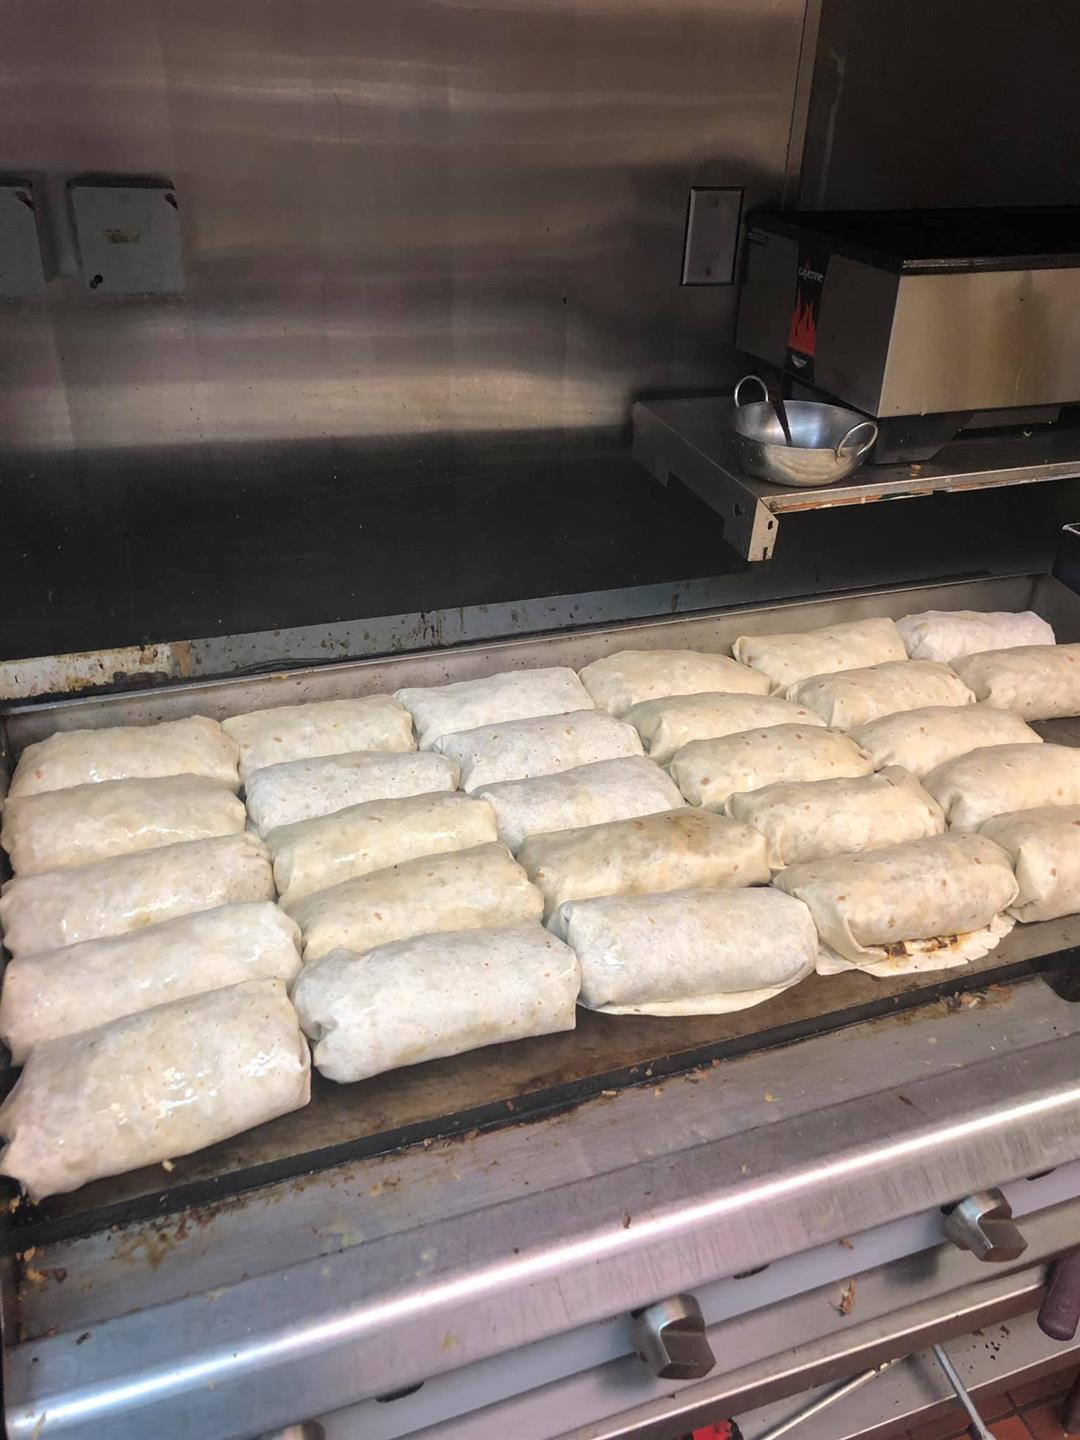 multiple burritos lined up in the kitchen